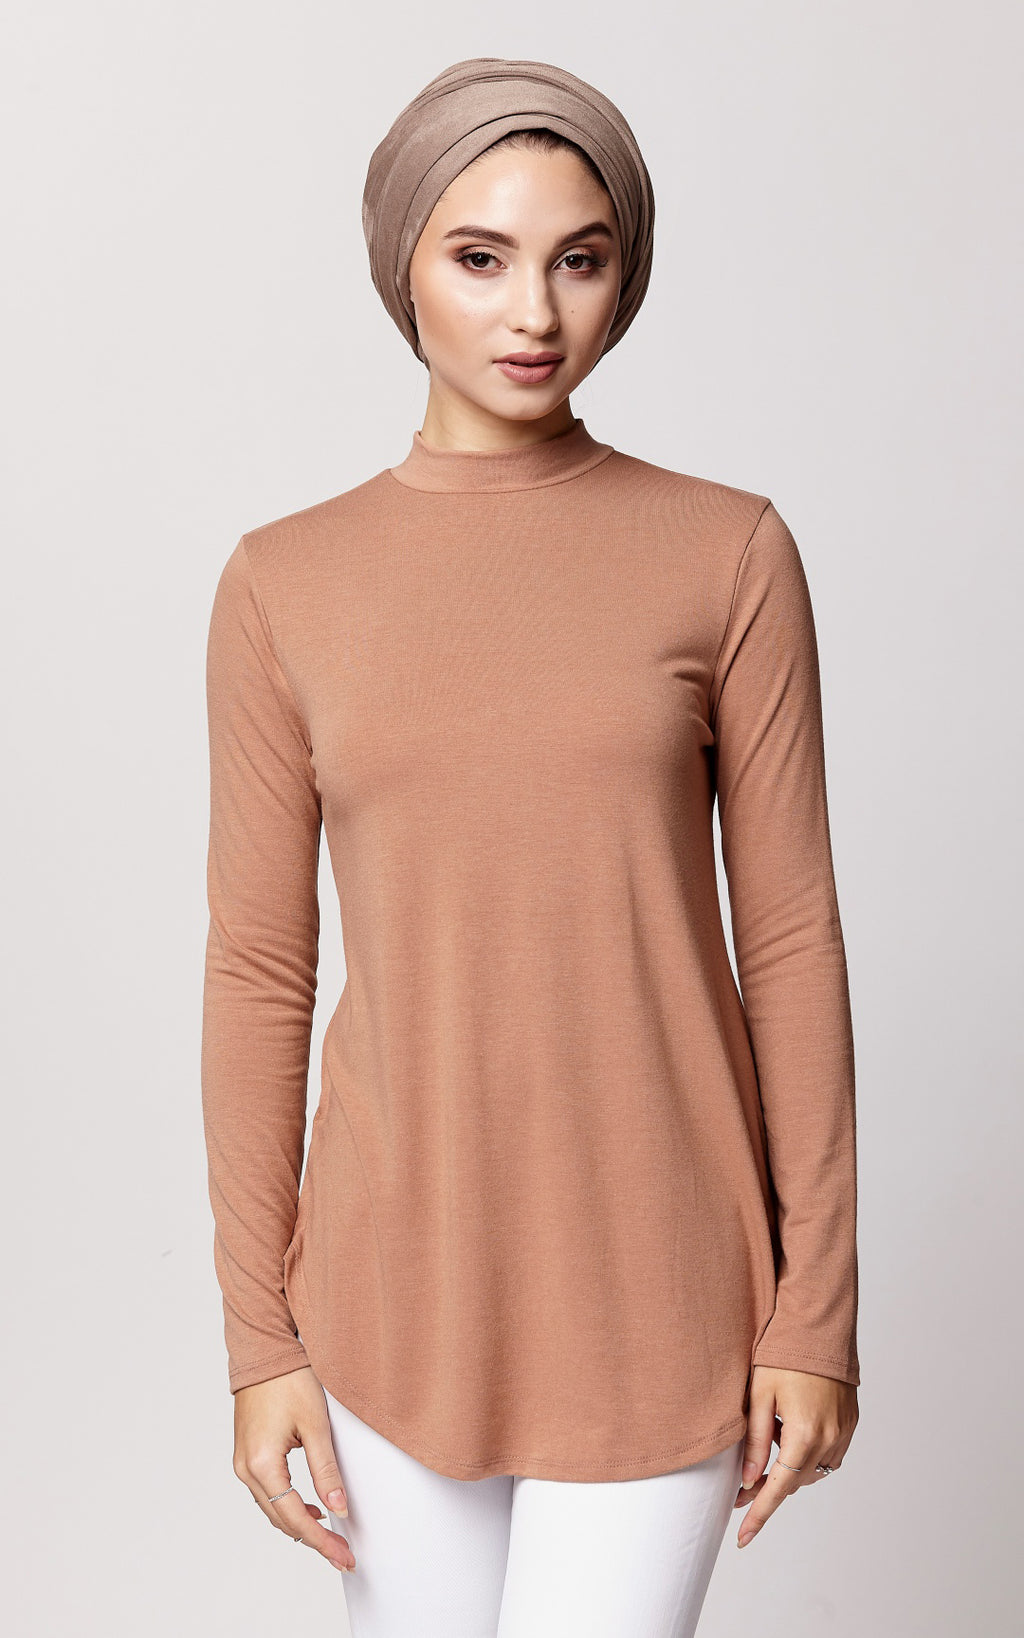 Relaxed Fit High Neck Top in Sepia